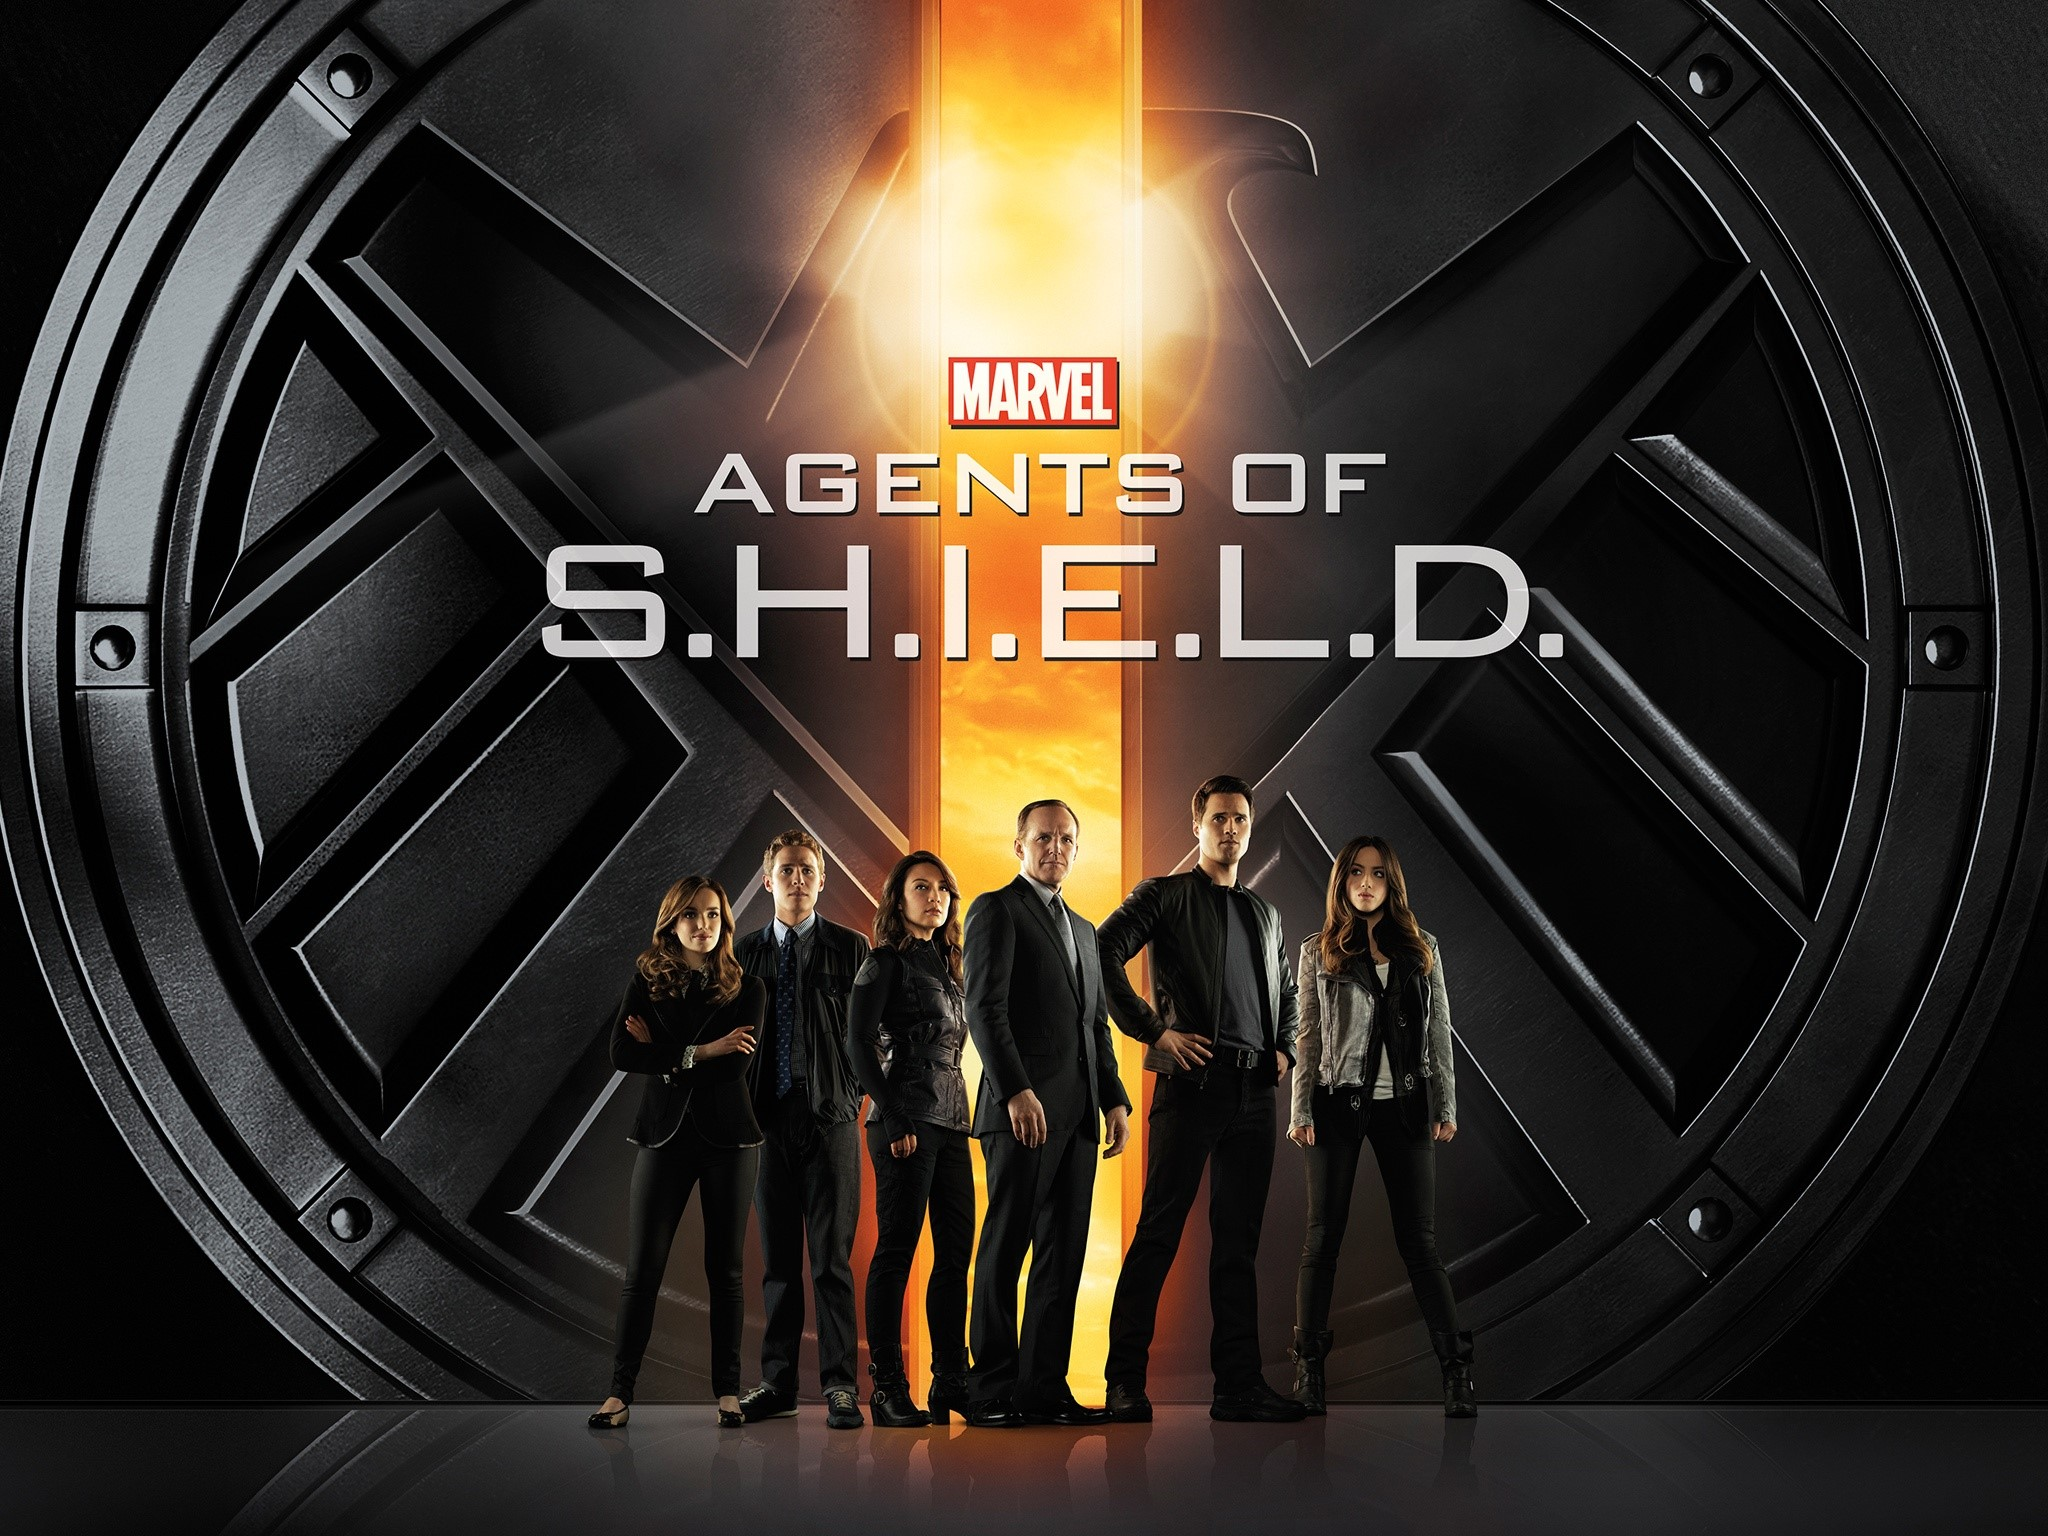 Wallpaper Agents of shield